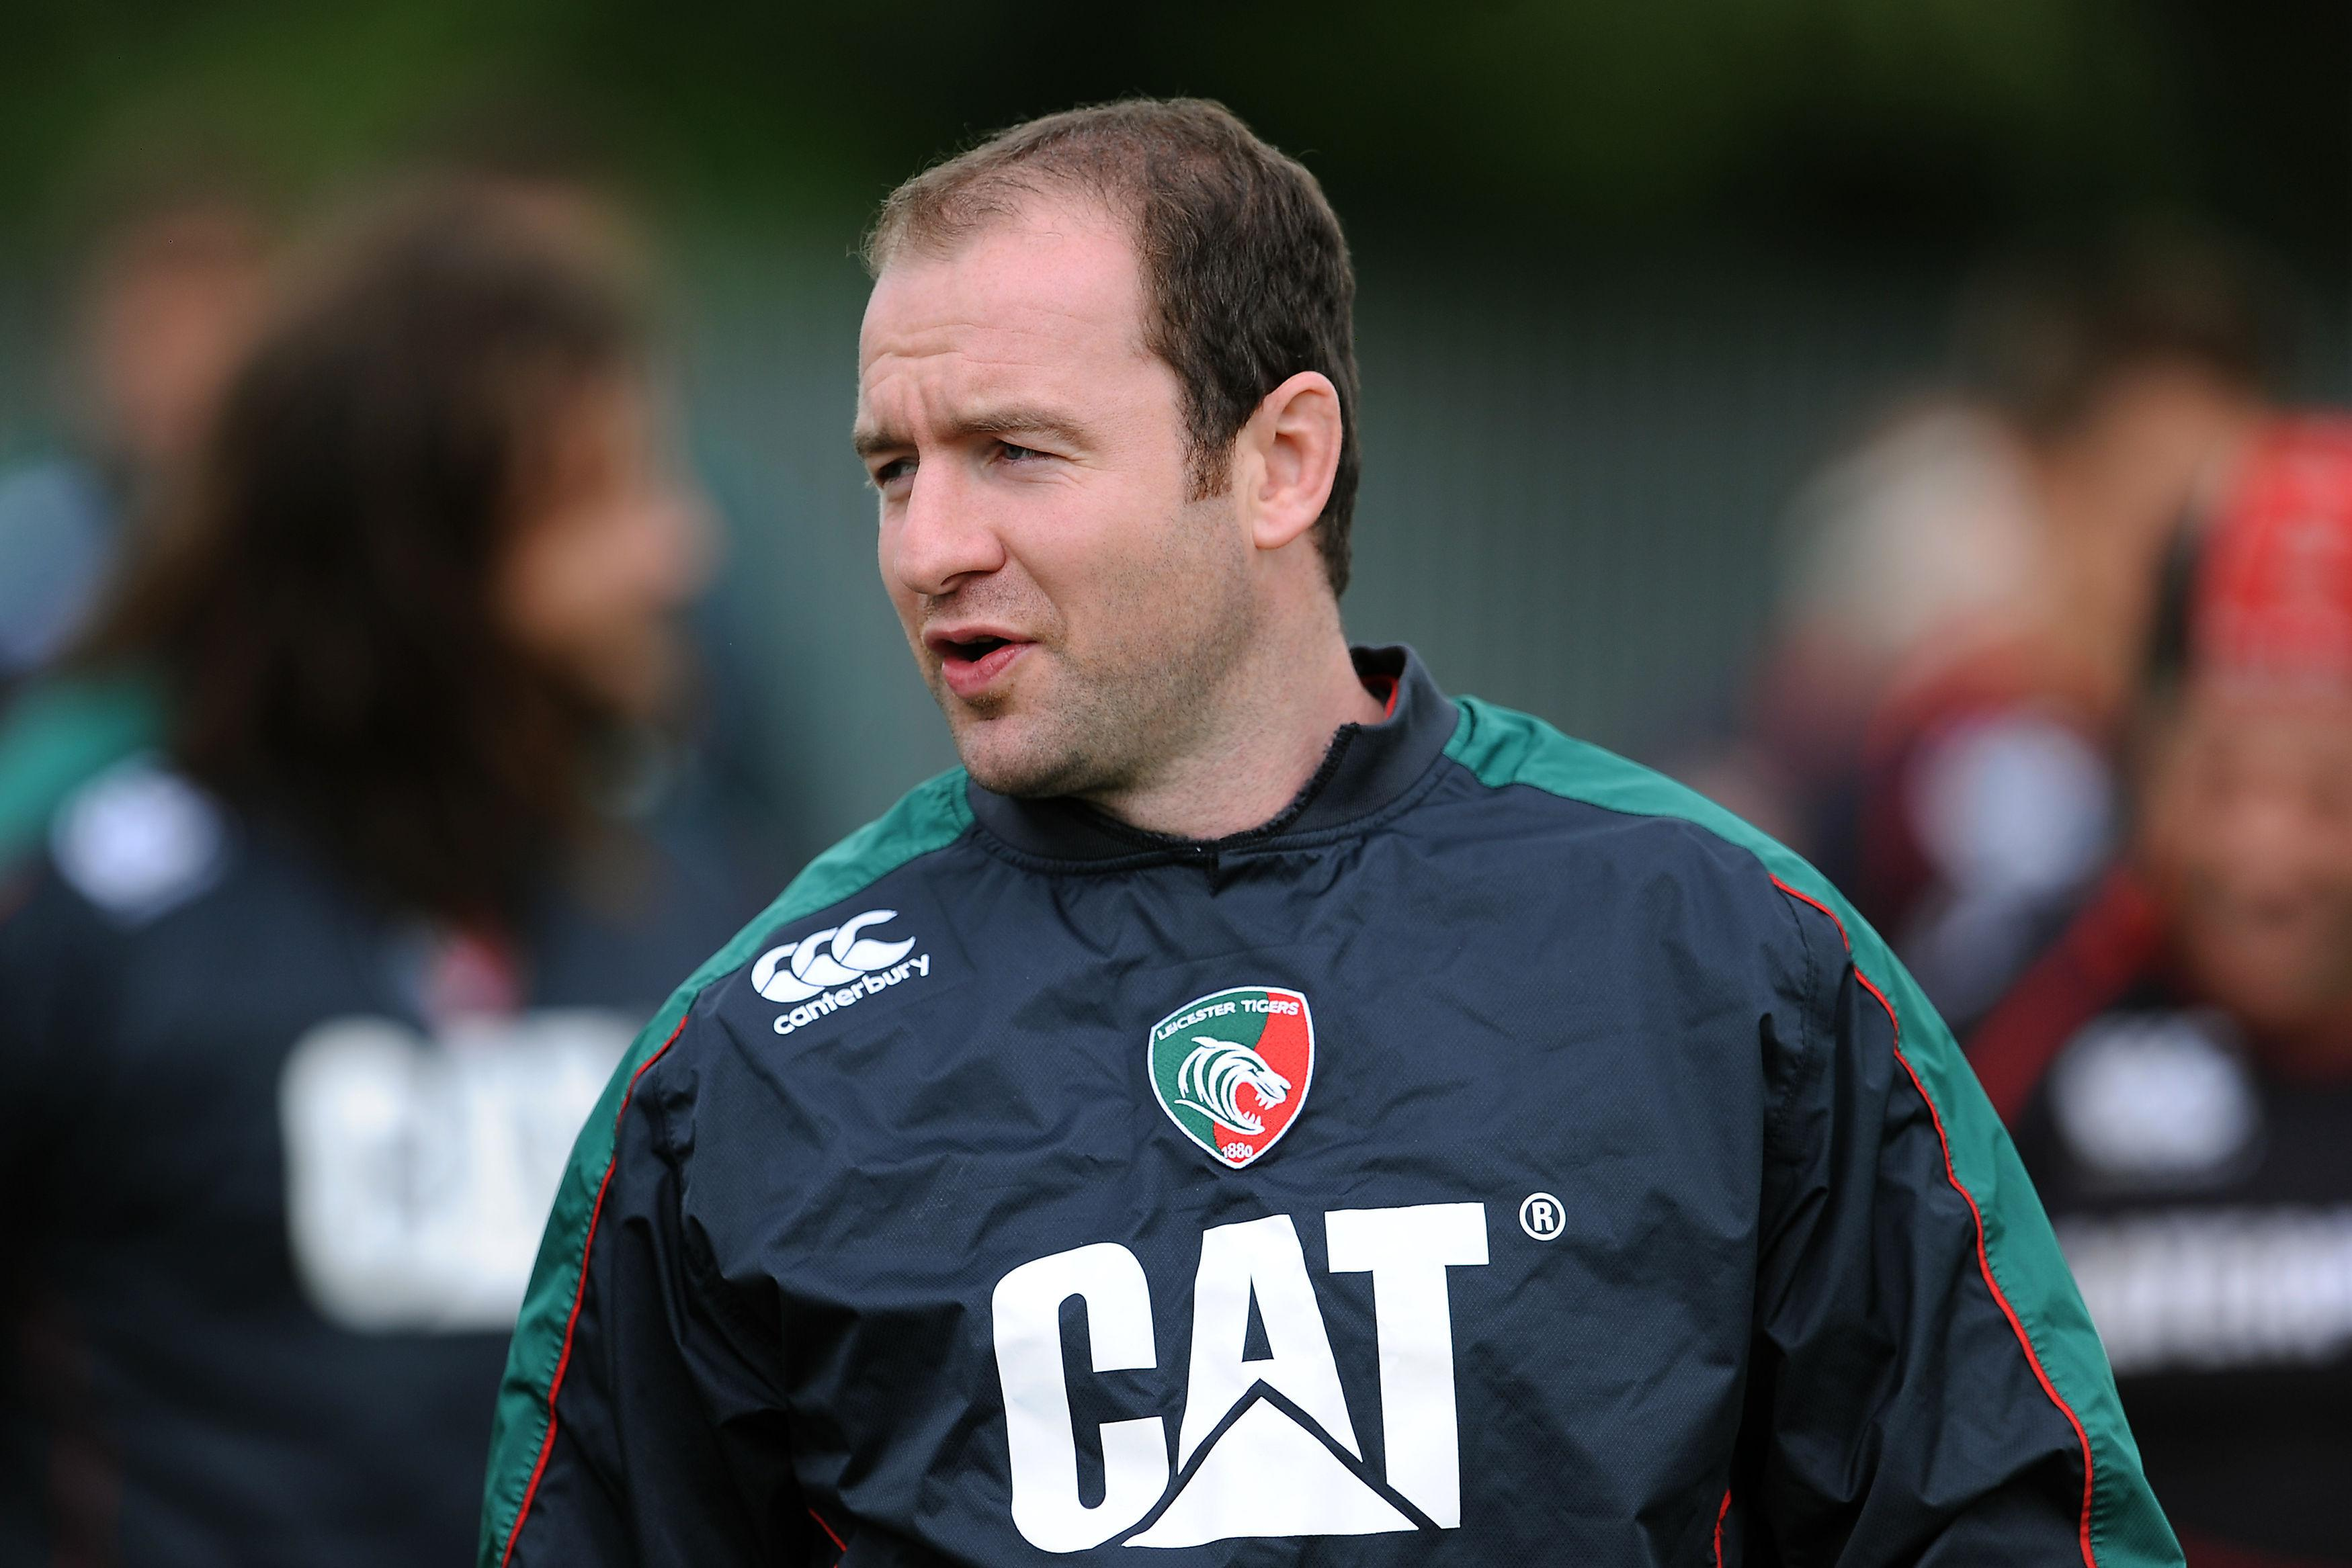 Geordan Murphy now takes over the reins as interim coach at Leicester Tigers